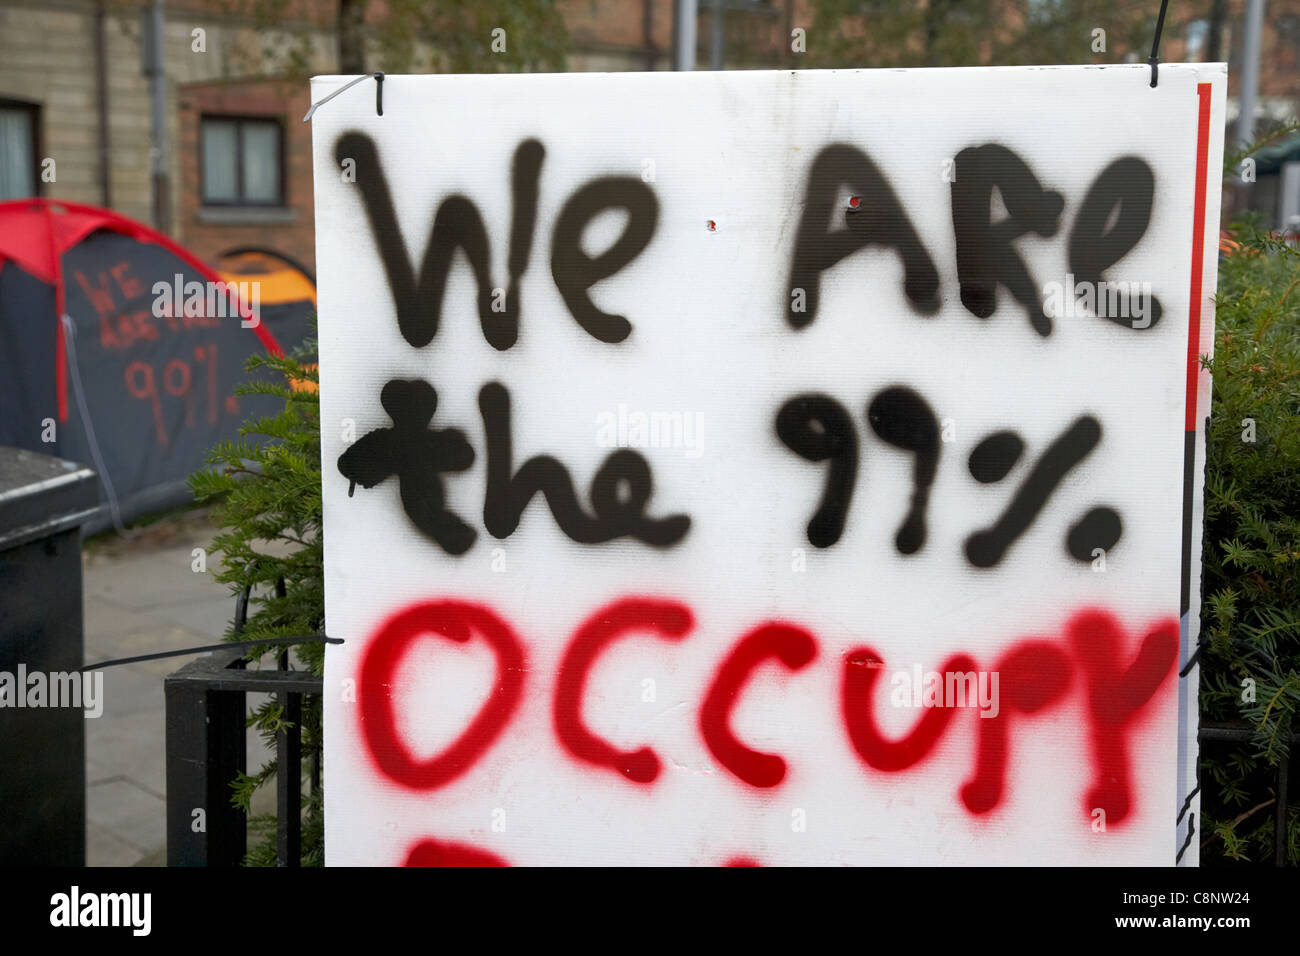 We are the 99% occupy belfast anti capitalist tented protest in writers square belfast northern ireland uk - Stock Image